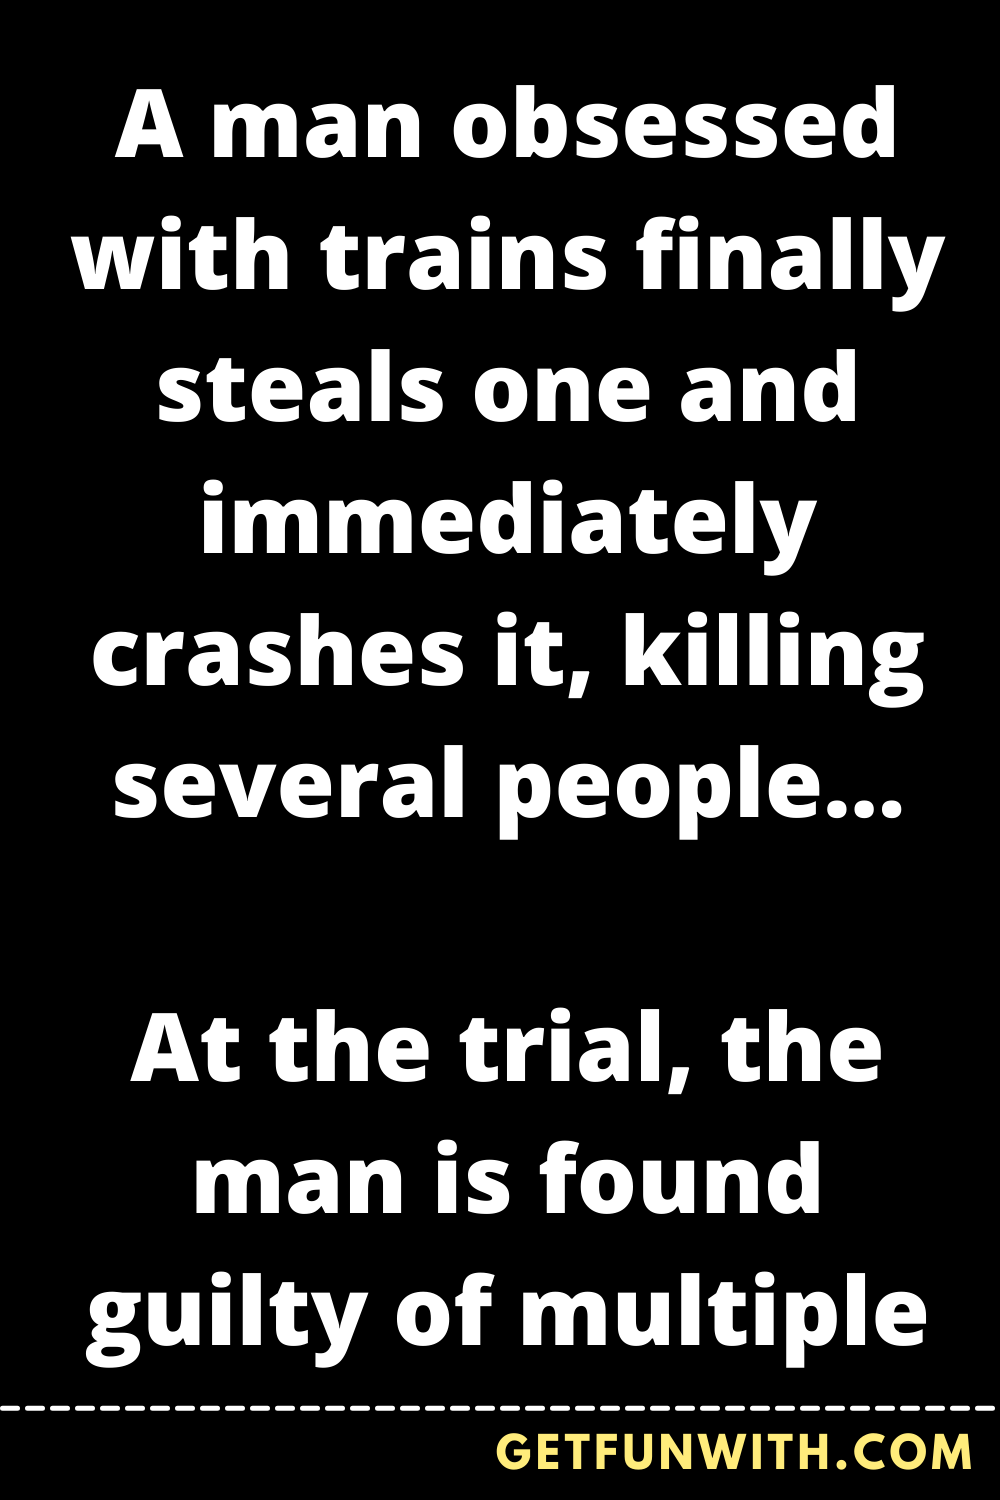 A man obsessed with trains finally steals one and immediately crashes it, killing several people...